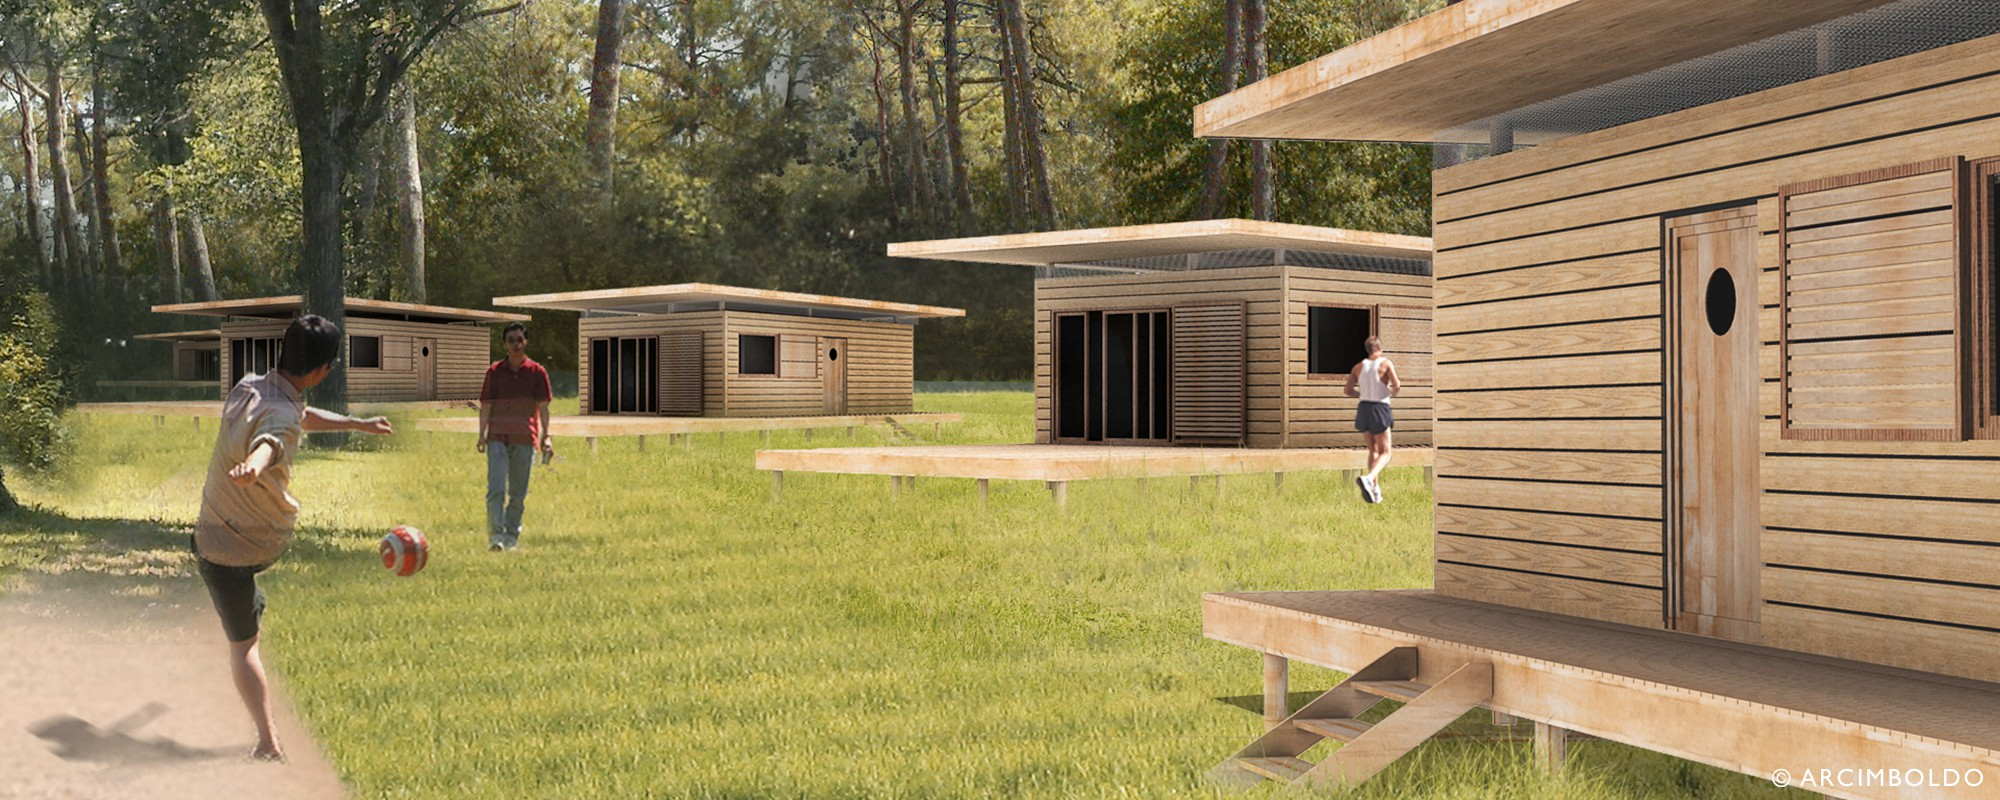 Woodbox cr ation d un prototype d habitation l g re de for Habitation legere de loisir